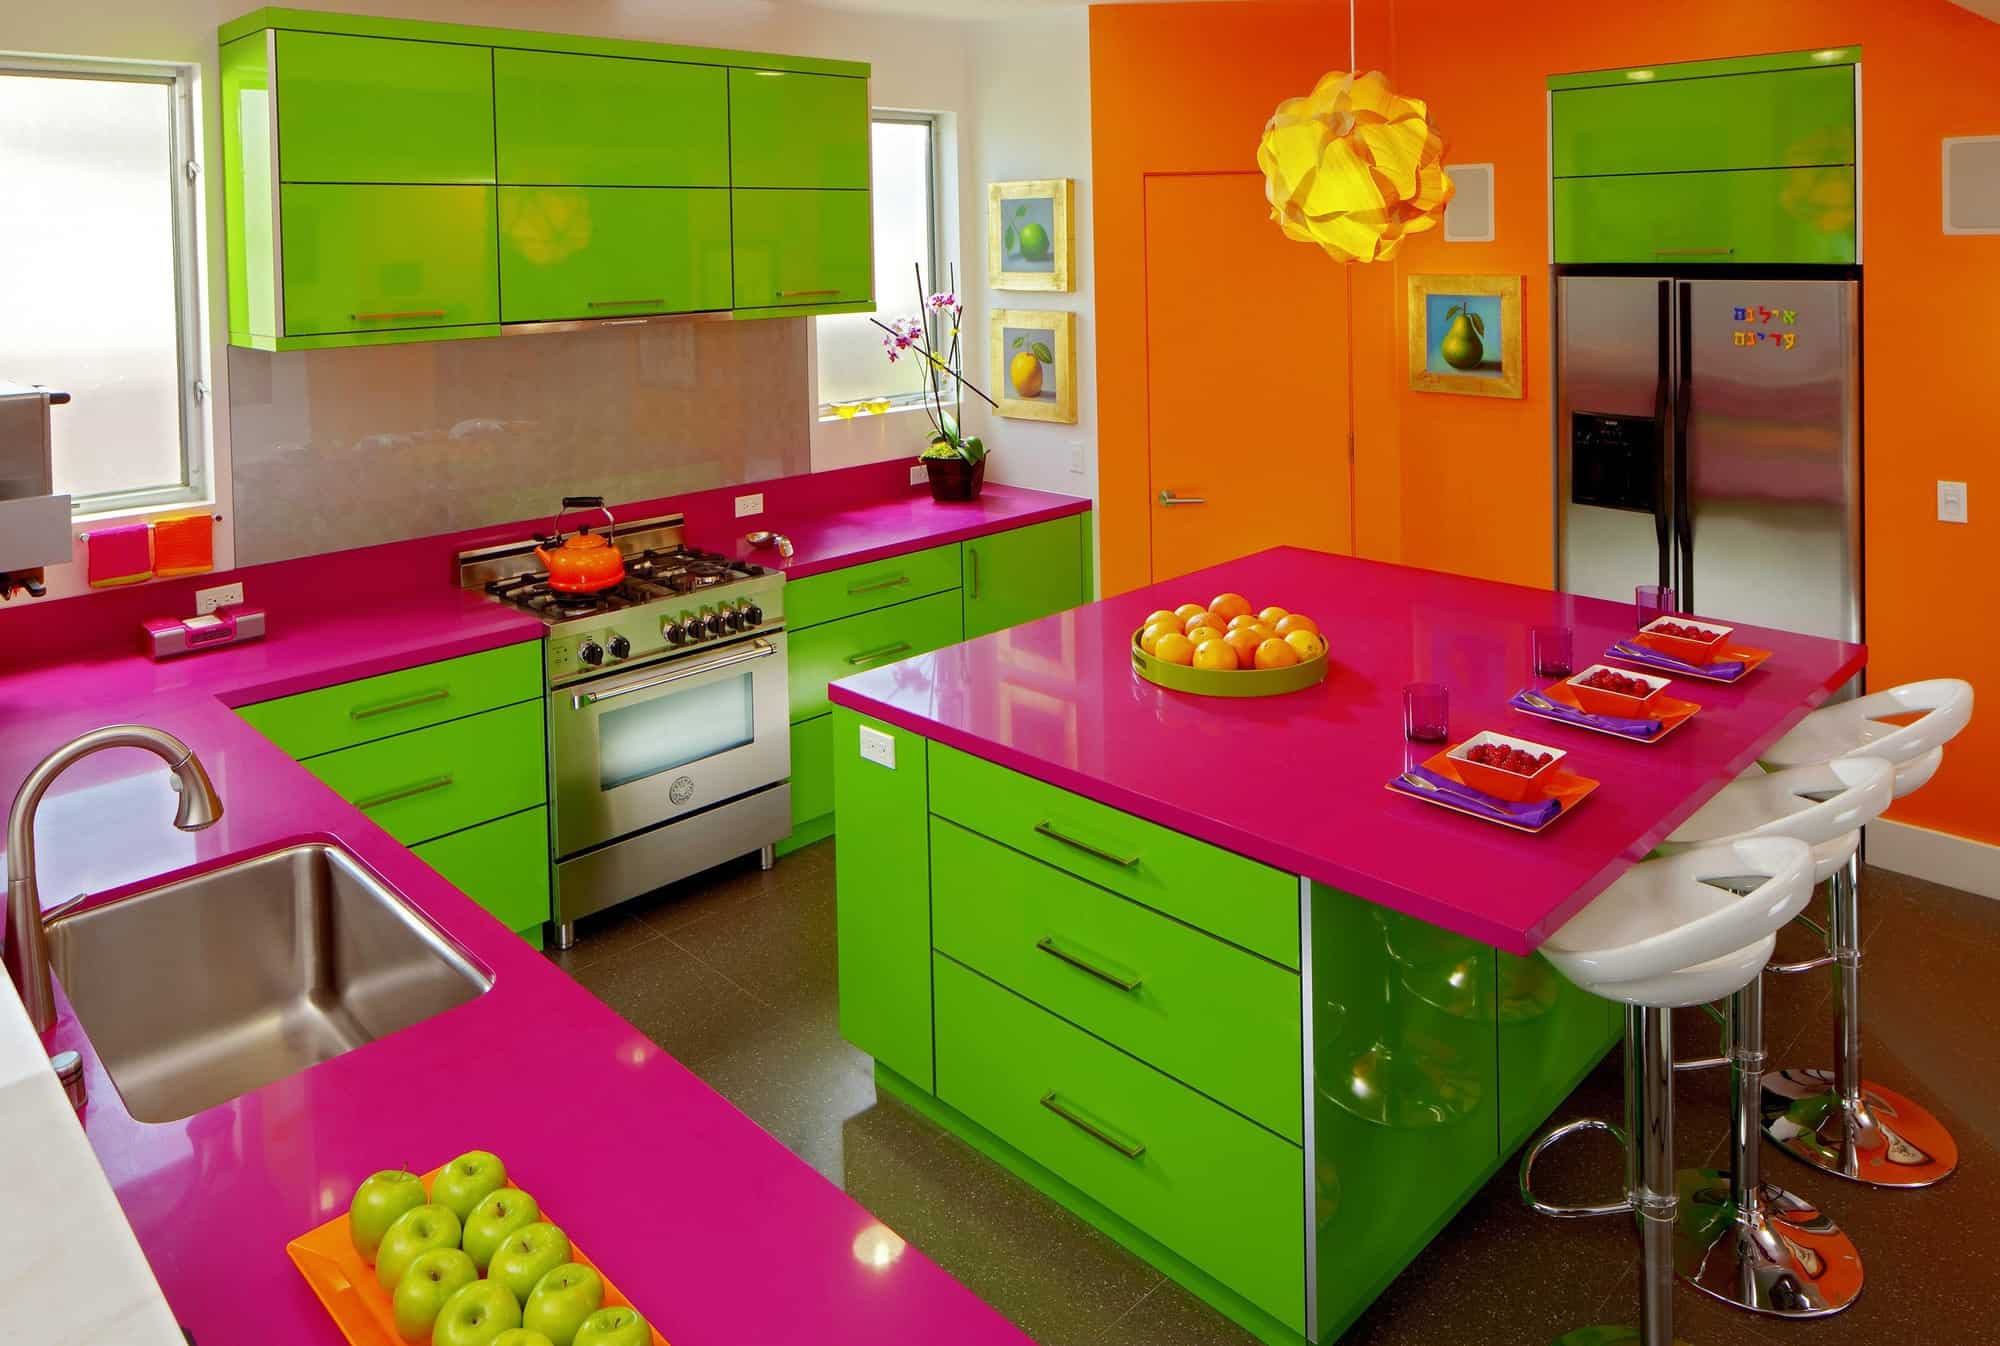 Hot Pink aand Lime Cabinets